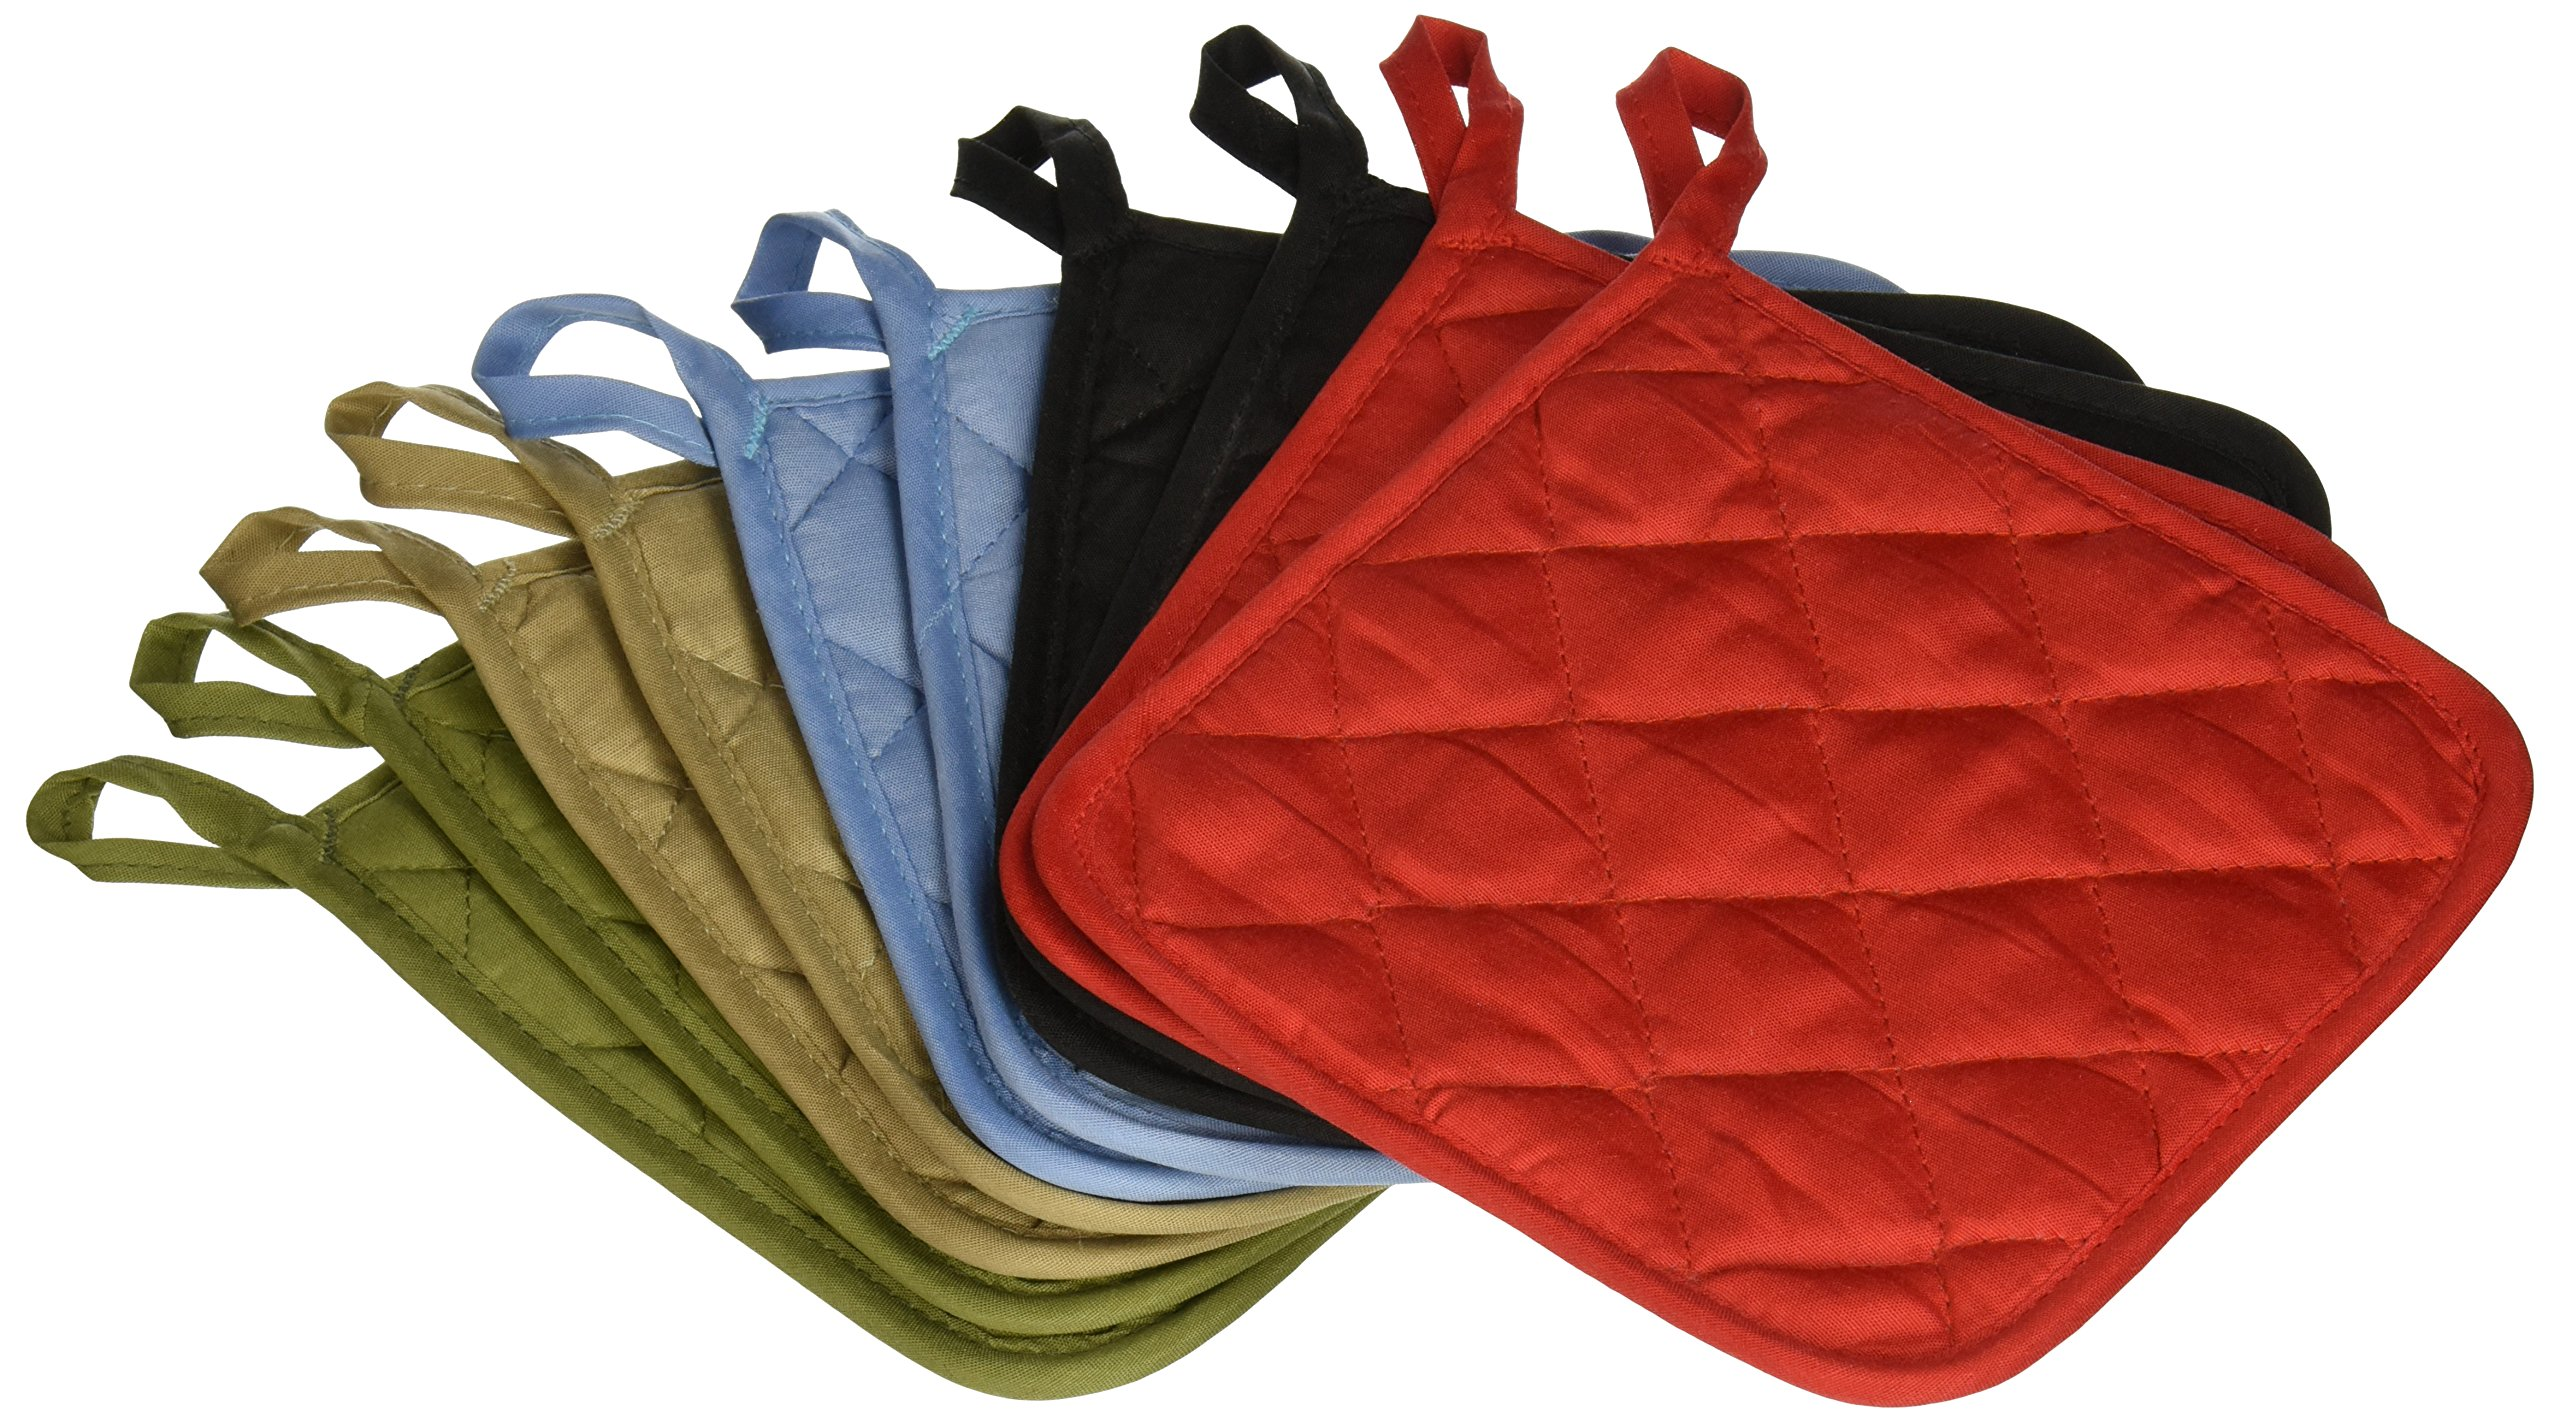 American Linen (Ten) 10 Pack Pot Holders 6.5 Square Solid Color Everday Quality Kitchen Cooking Chef Linens (Multi Color)